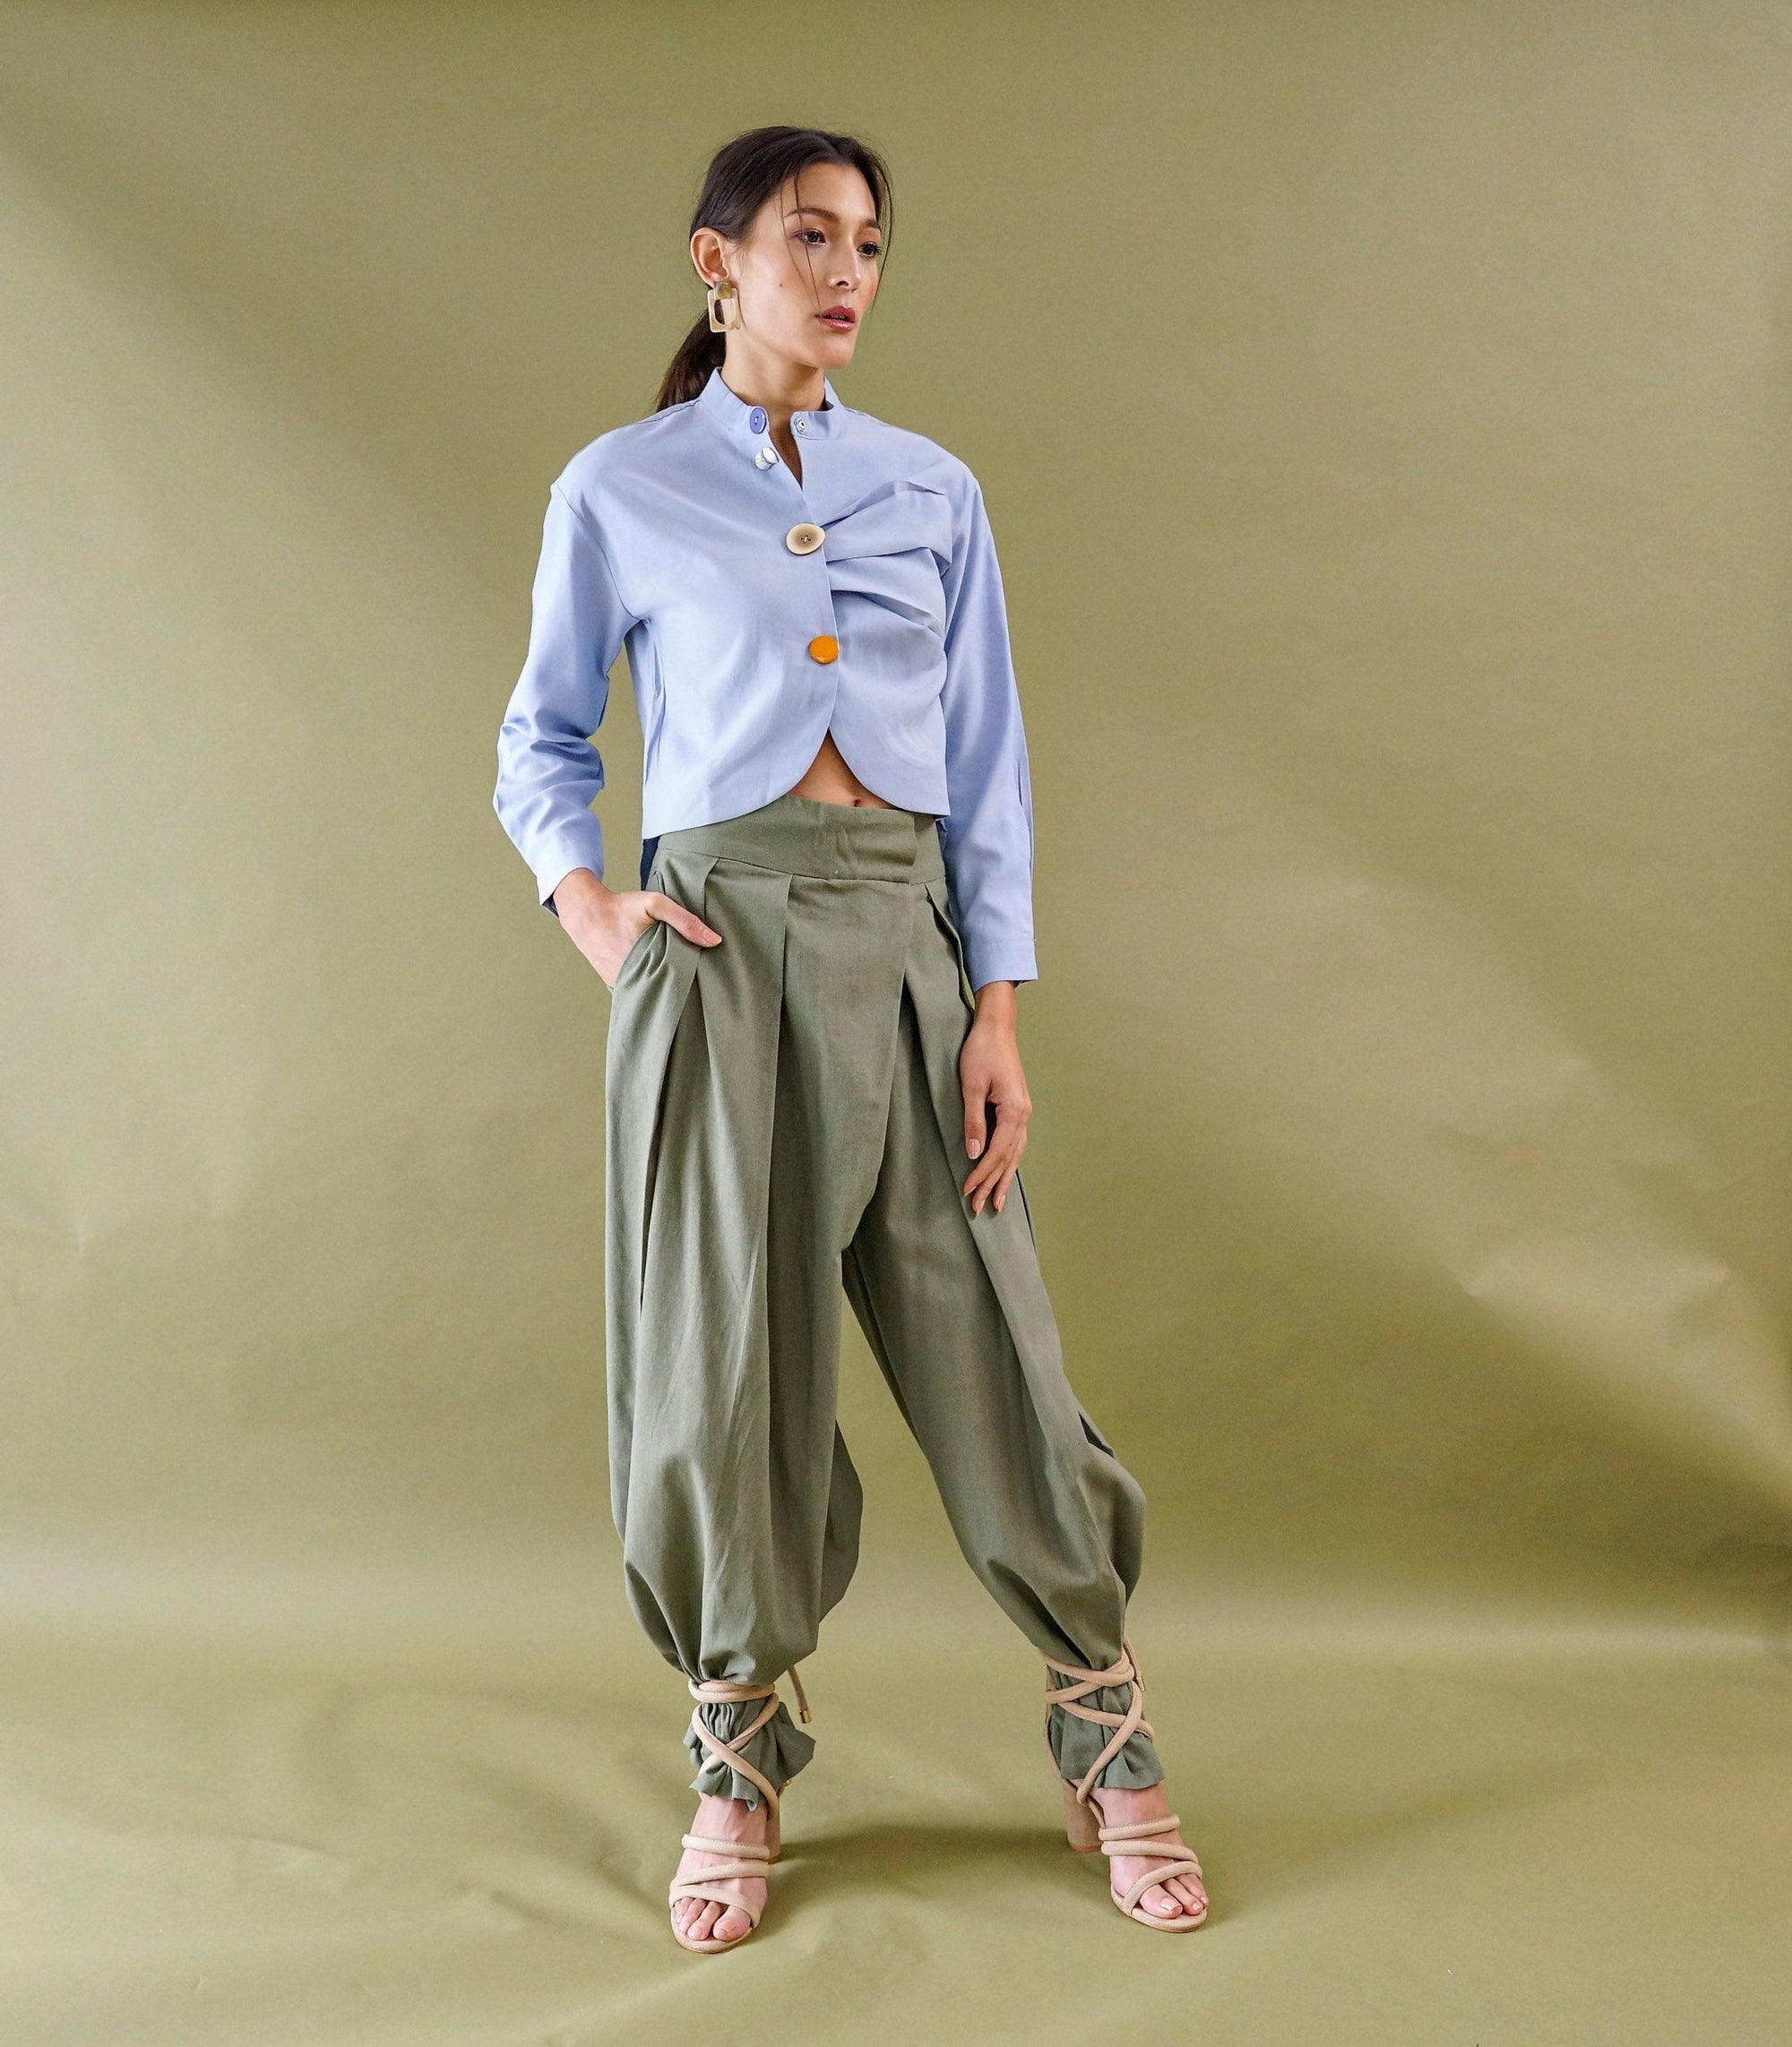 Andenne Cropped Blouse (Powder Blue)